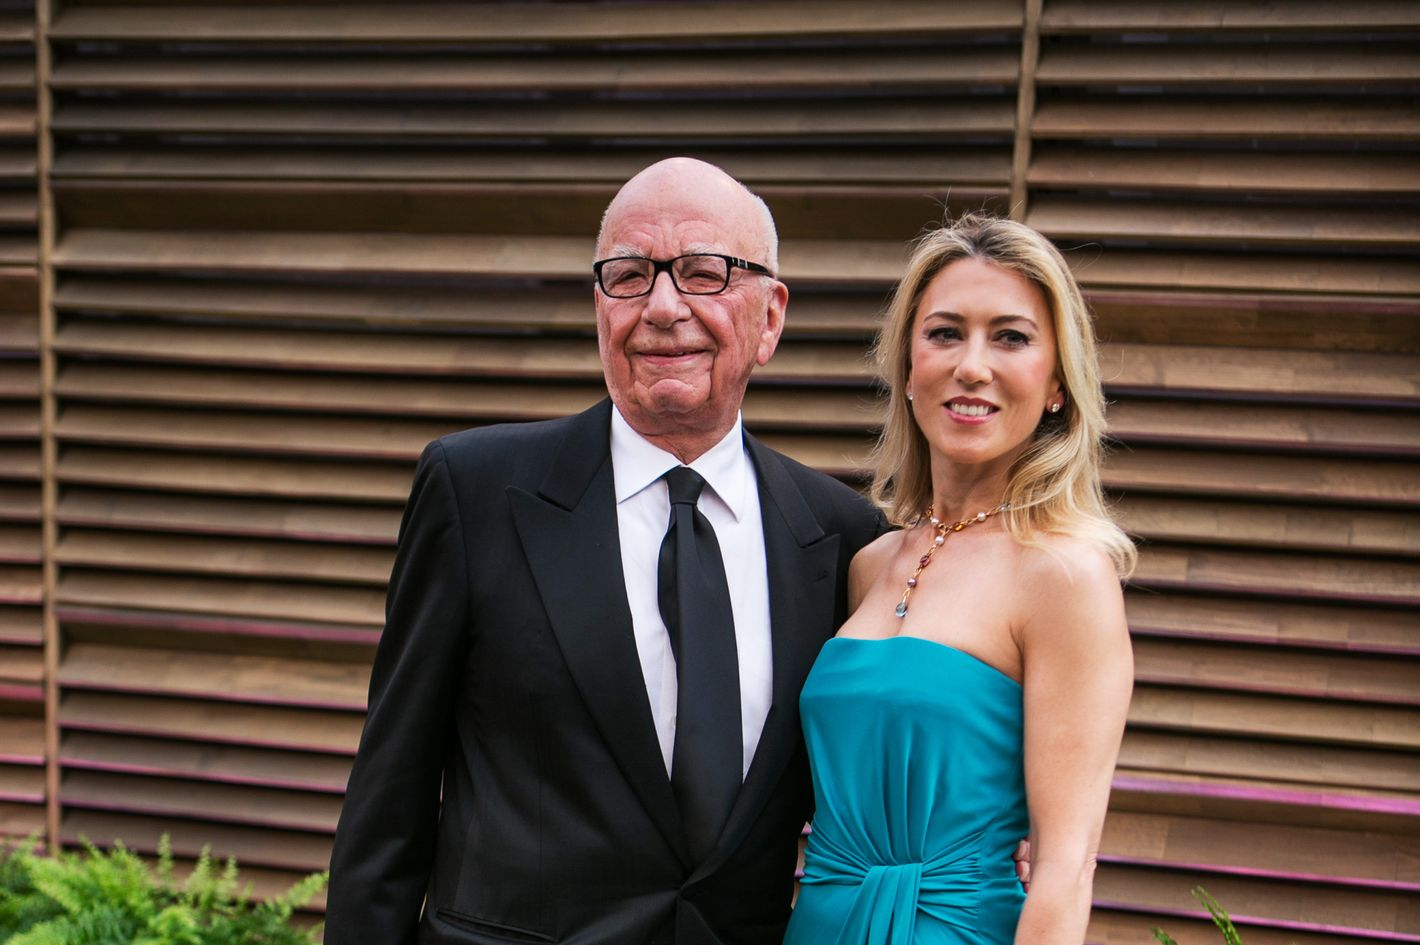 Rupert Murdoch and guest arrive to the 2014 Vanity Fair Oscar Party on Sunday, March 2, 2014 in West Hollywood, California.